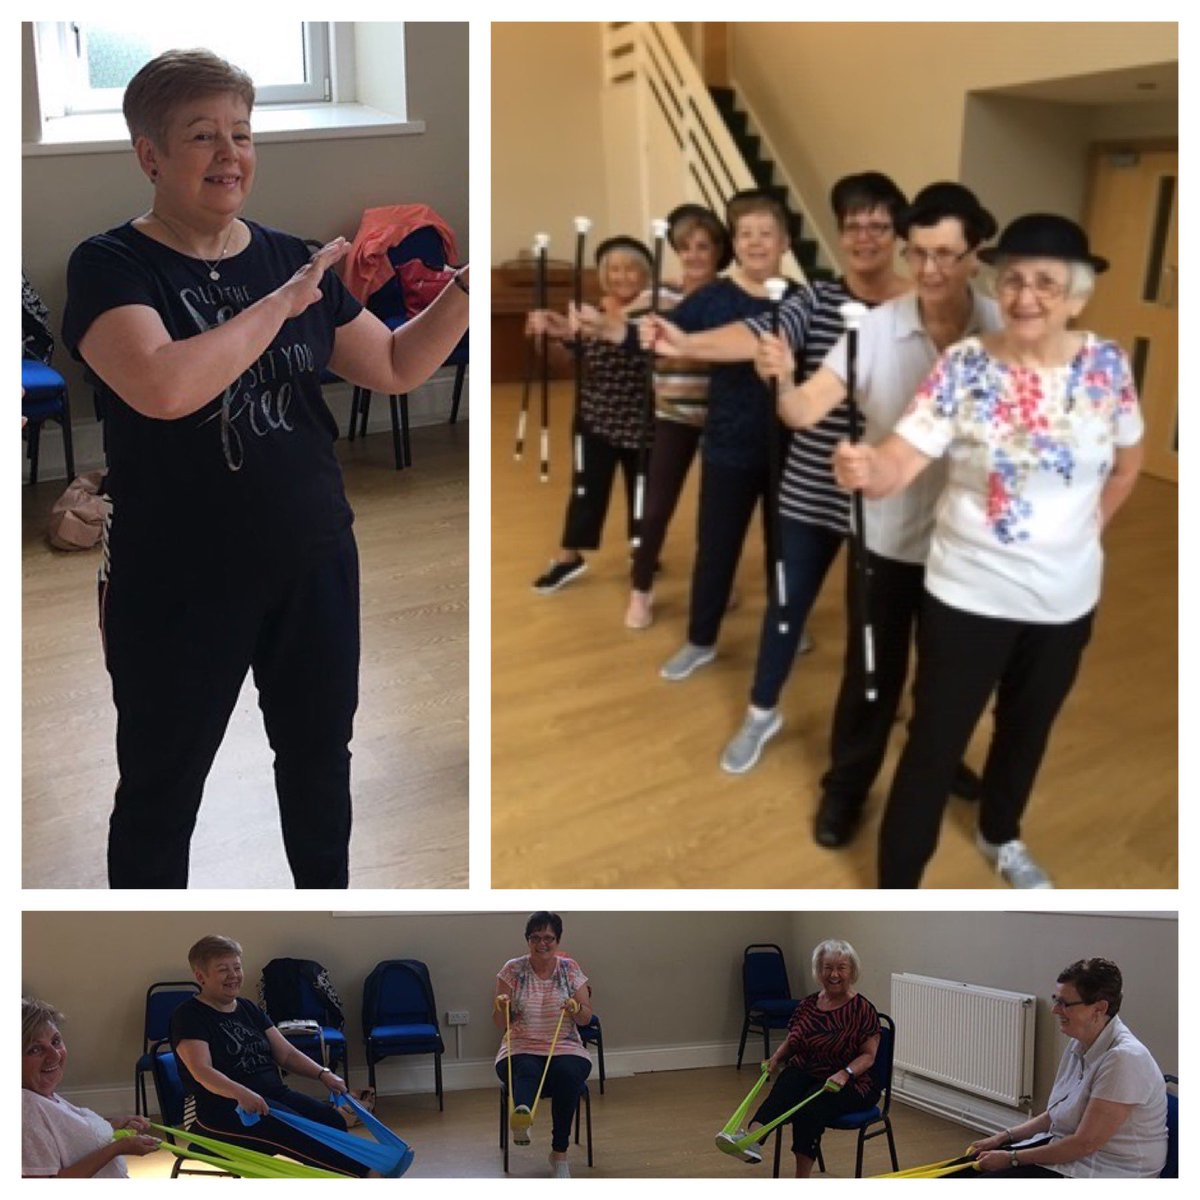 🤩🤩New Dance Fitness Class for Over 50s🤩🤩   Every Wednesday, 11:30am-12:30pm   Fun and friendly - suitable for anyone! Just drop in and give it a go!  For more info please call Kerry on 07886 995865  #AllWelcome #bwh #Dance #Fitness #CommunityHub #BTMarea